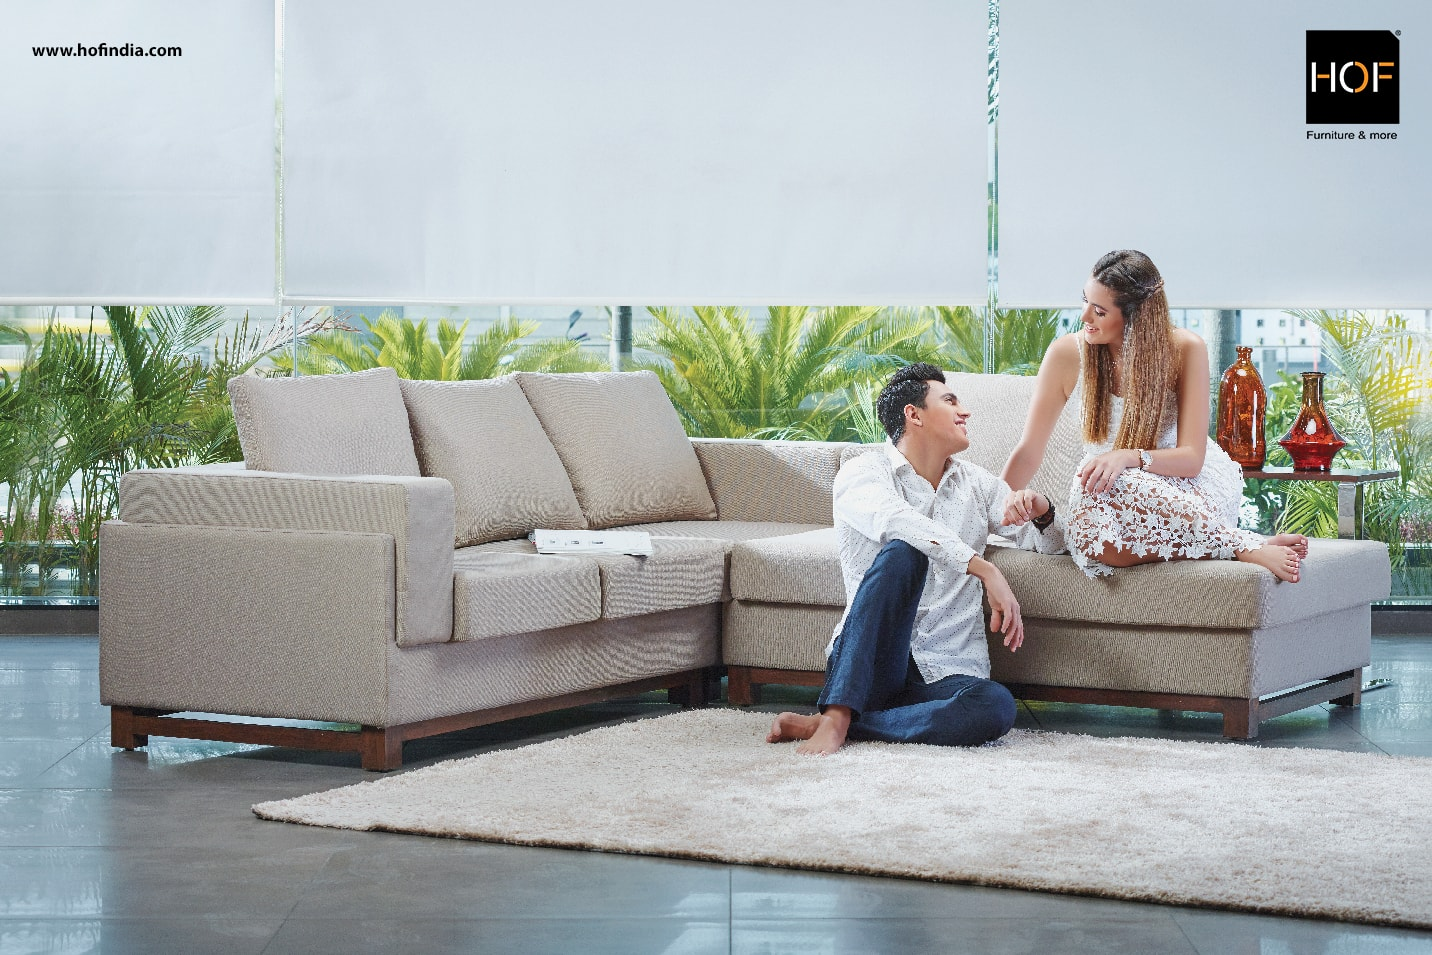 Guide to Buying a Sofa Online